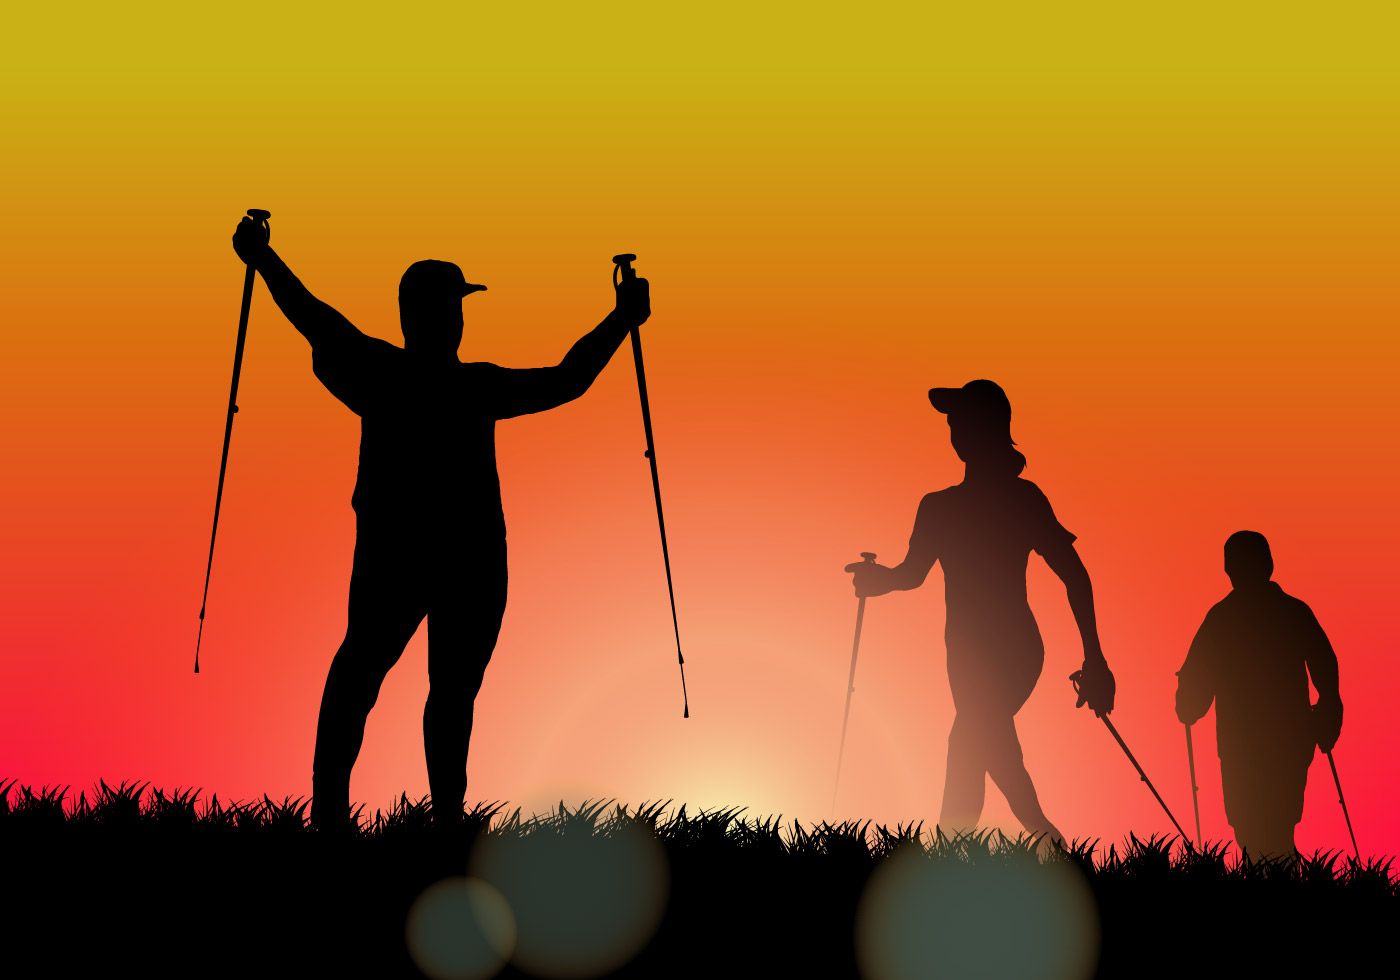 Walking at Sunset Silhouette Vector - Download Free